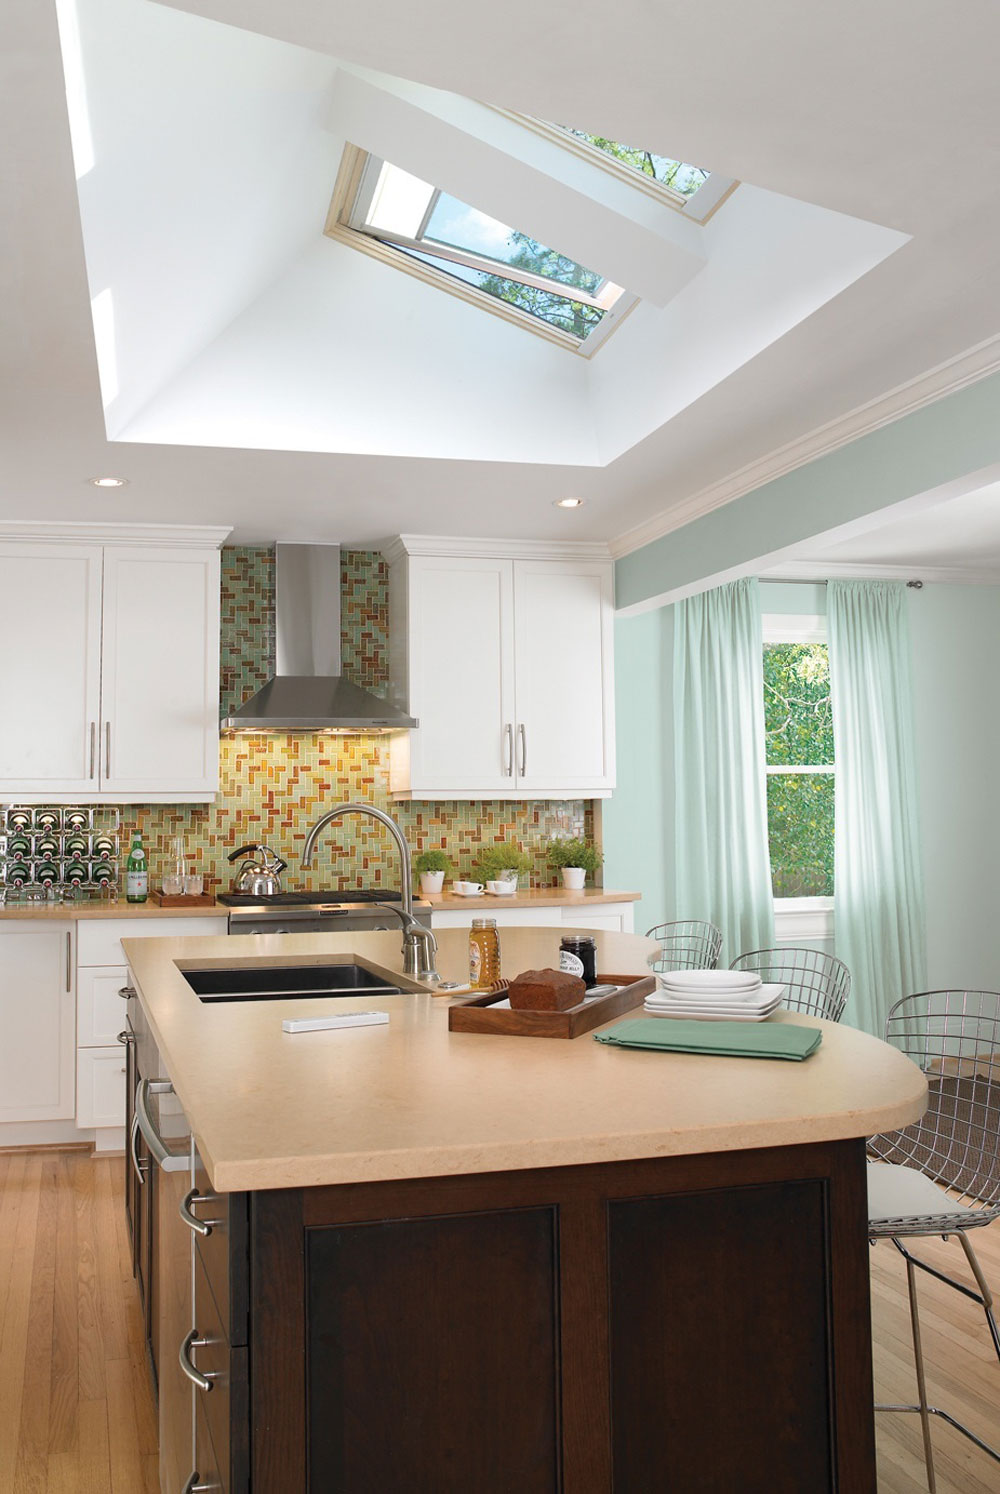 Kitchens-With-Skylights-For-More-Natural-Light-11 Kitchens